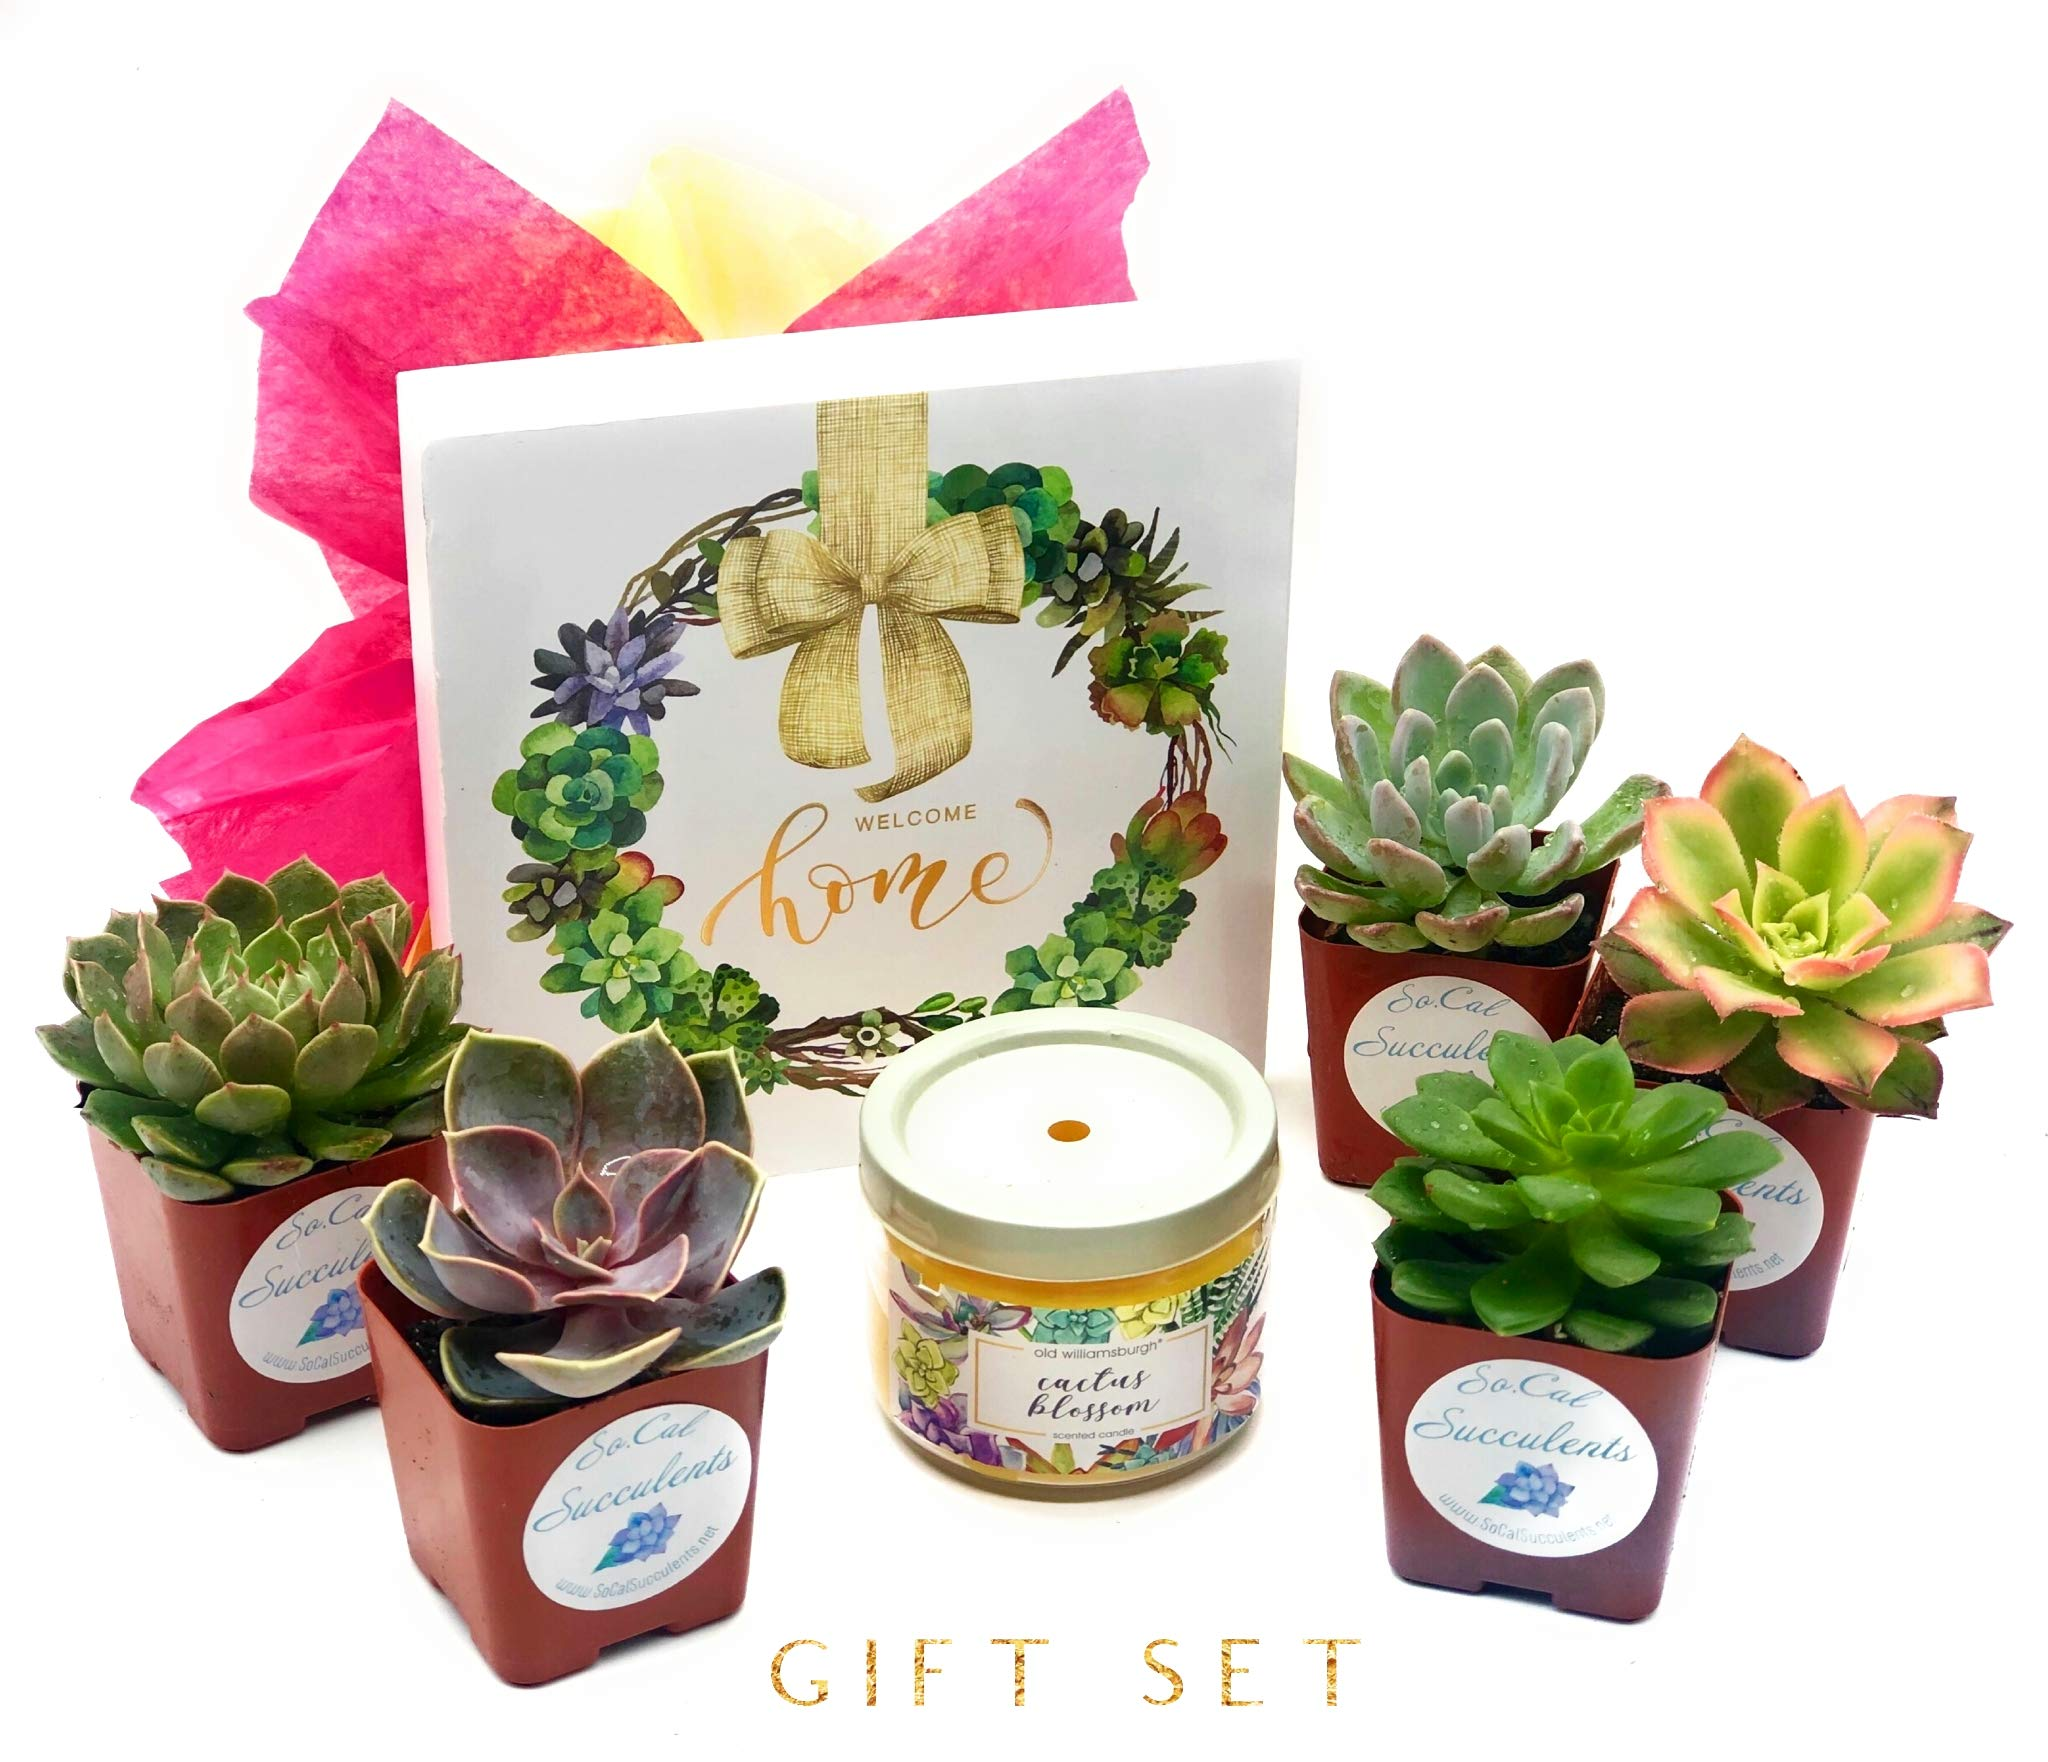 SoCal Succulents - Succulent Gift Set! 5 Assorted Succulents, a Cactus Bloom Candle, and Welcome Home Sign. Thanksgiving, Birthdays, Christmas and More! by SoCal Succulents